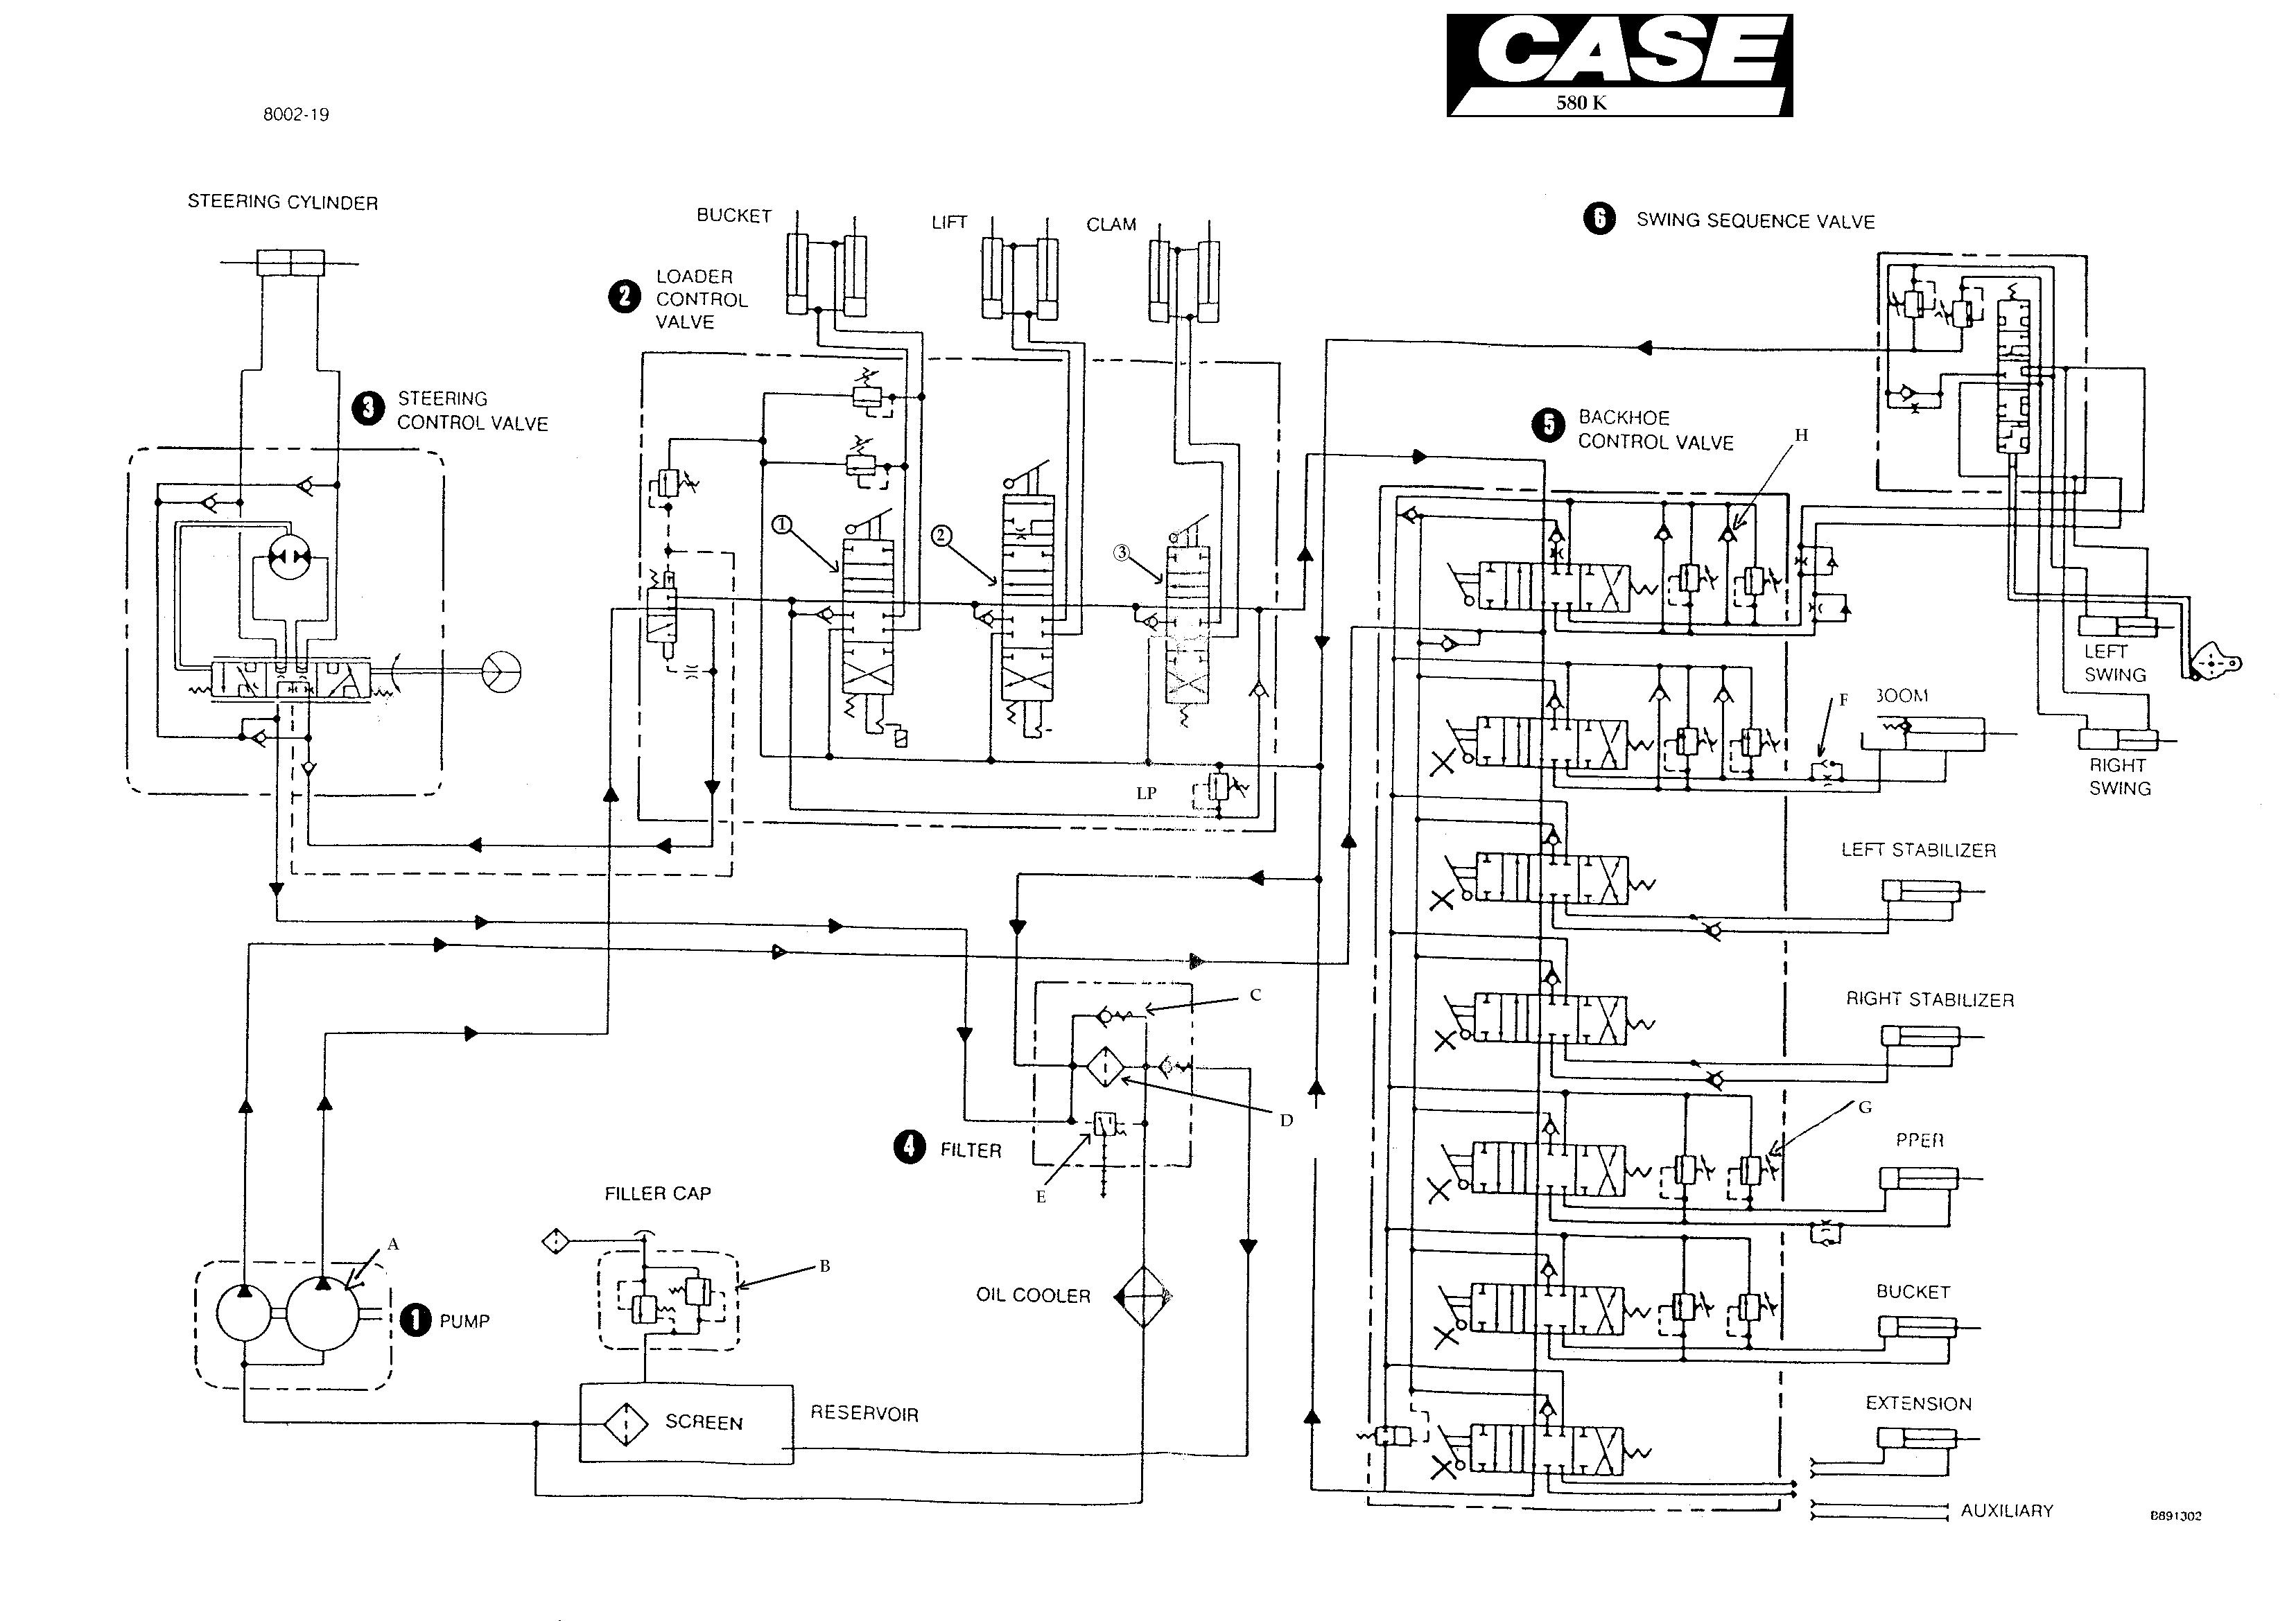 Case Wiring Diagram Auto Electrical 1977 International 1700 Diesel Related With